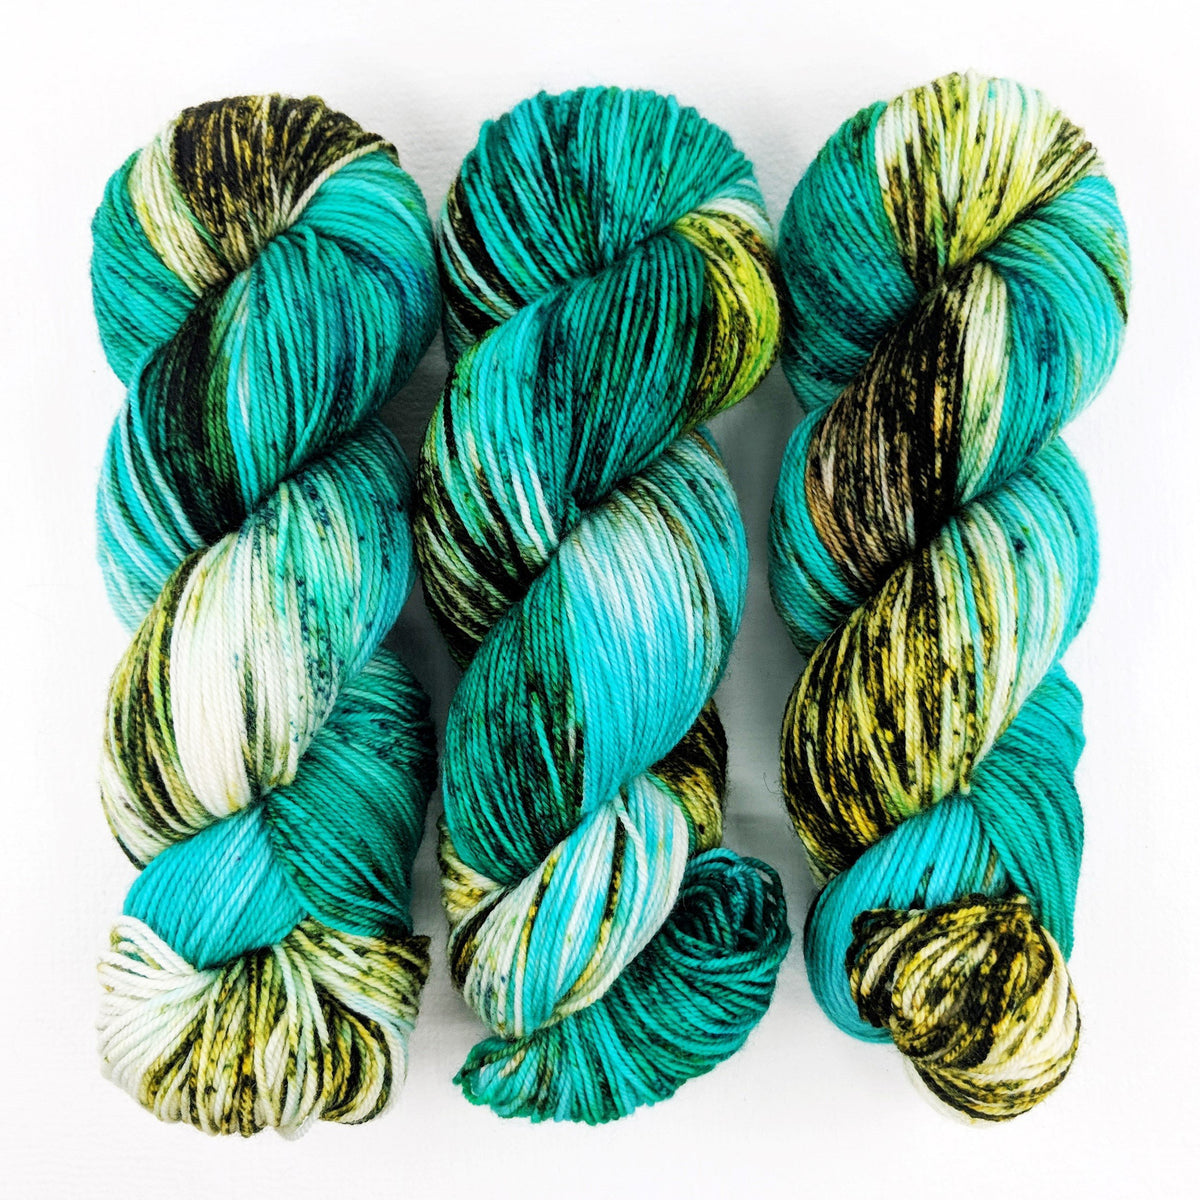 Northern Aurora - Socknado Fingering - Dyed Stock